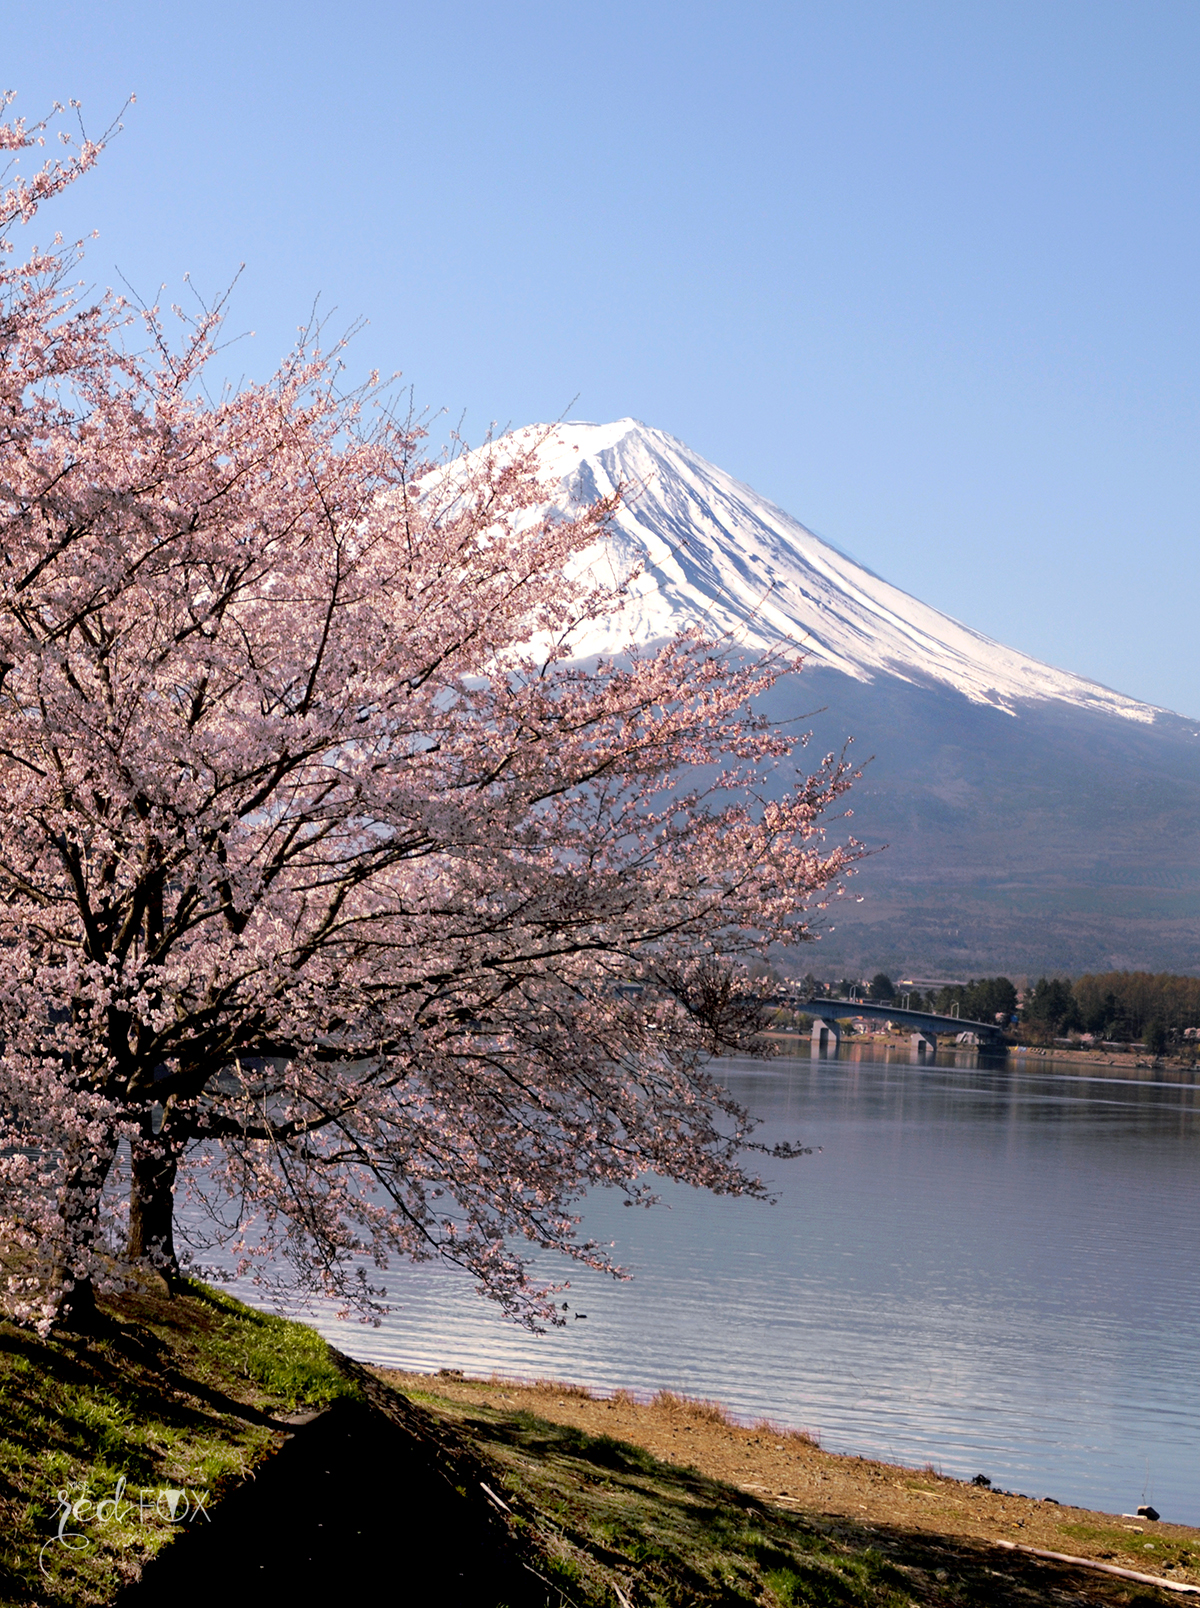 missredfox - Japan - Fuji - 46